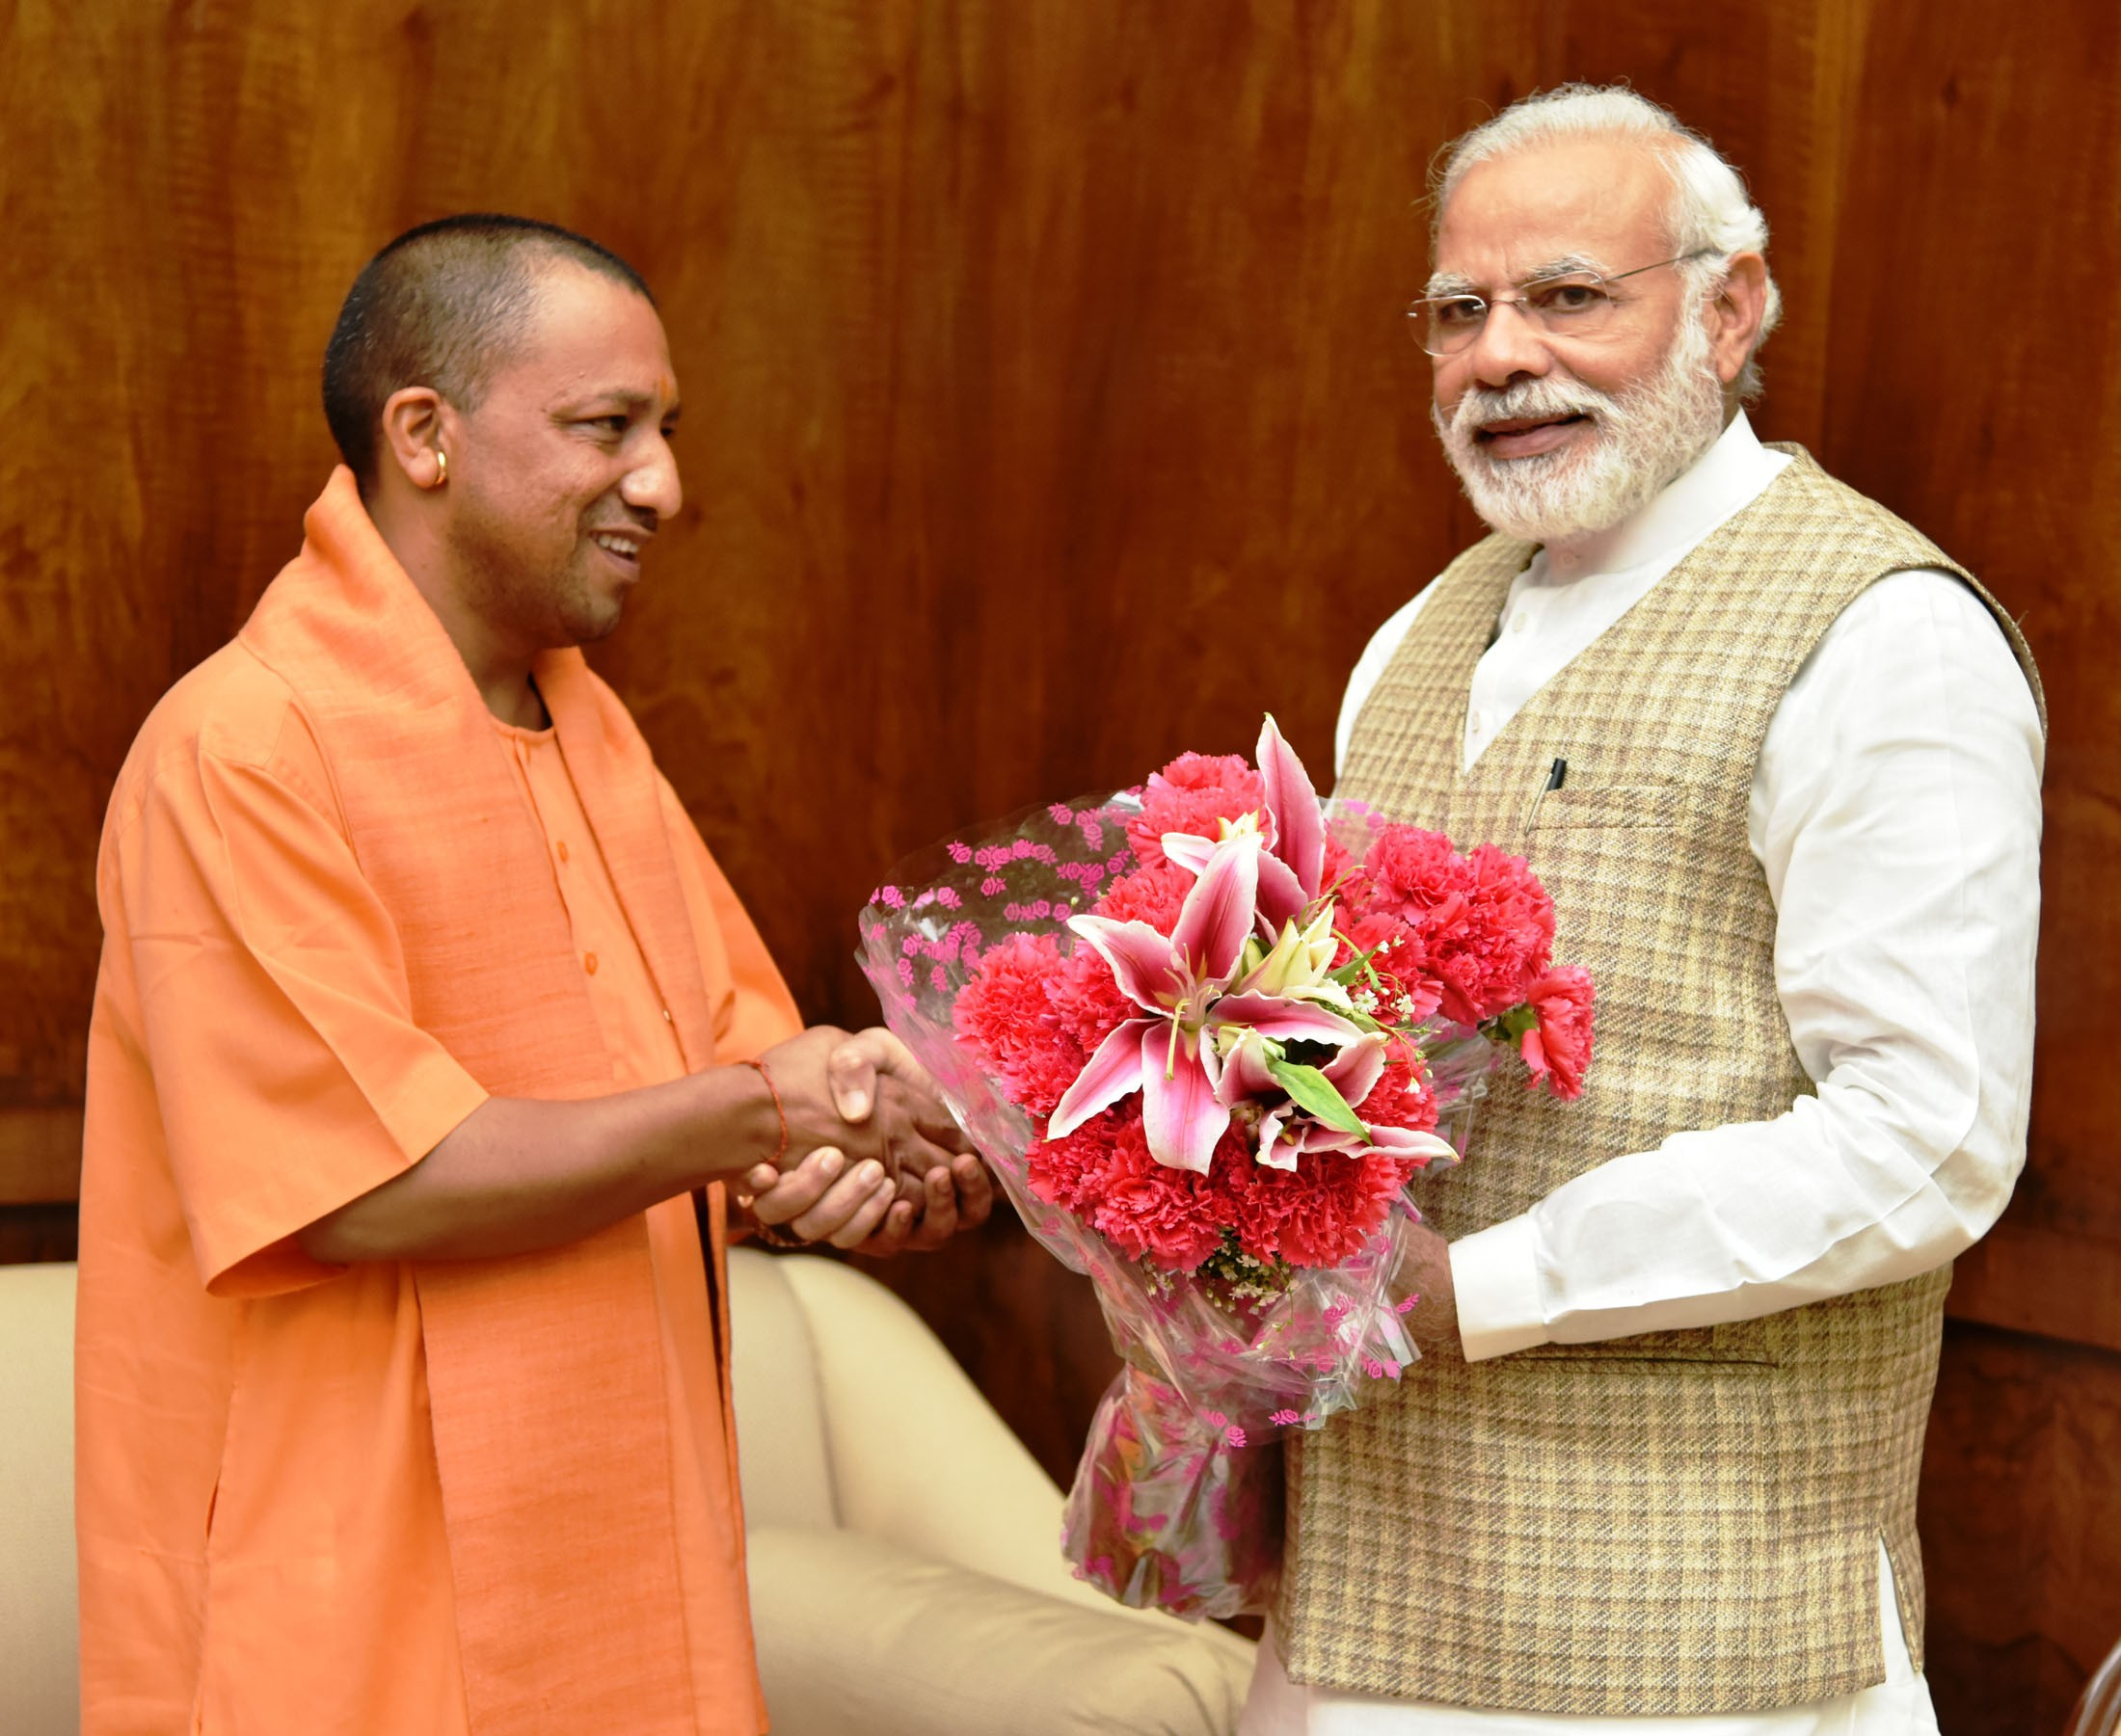 Prime Minister Narendra Modi with Uttar Pradesh Chief Minister Adityanath. (Credit: Press Information Bureau)